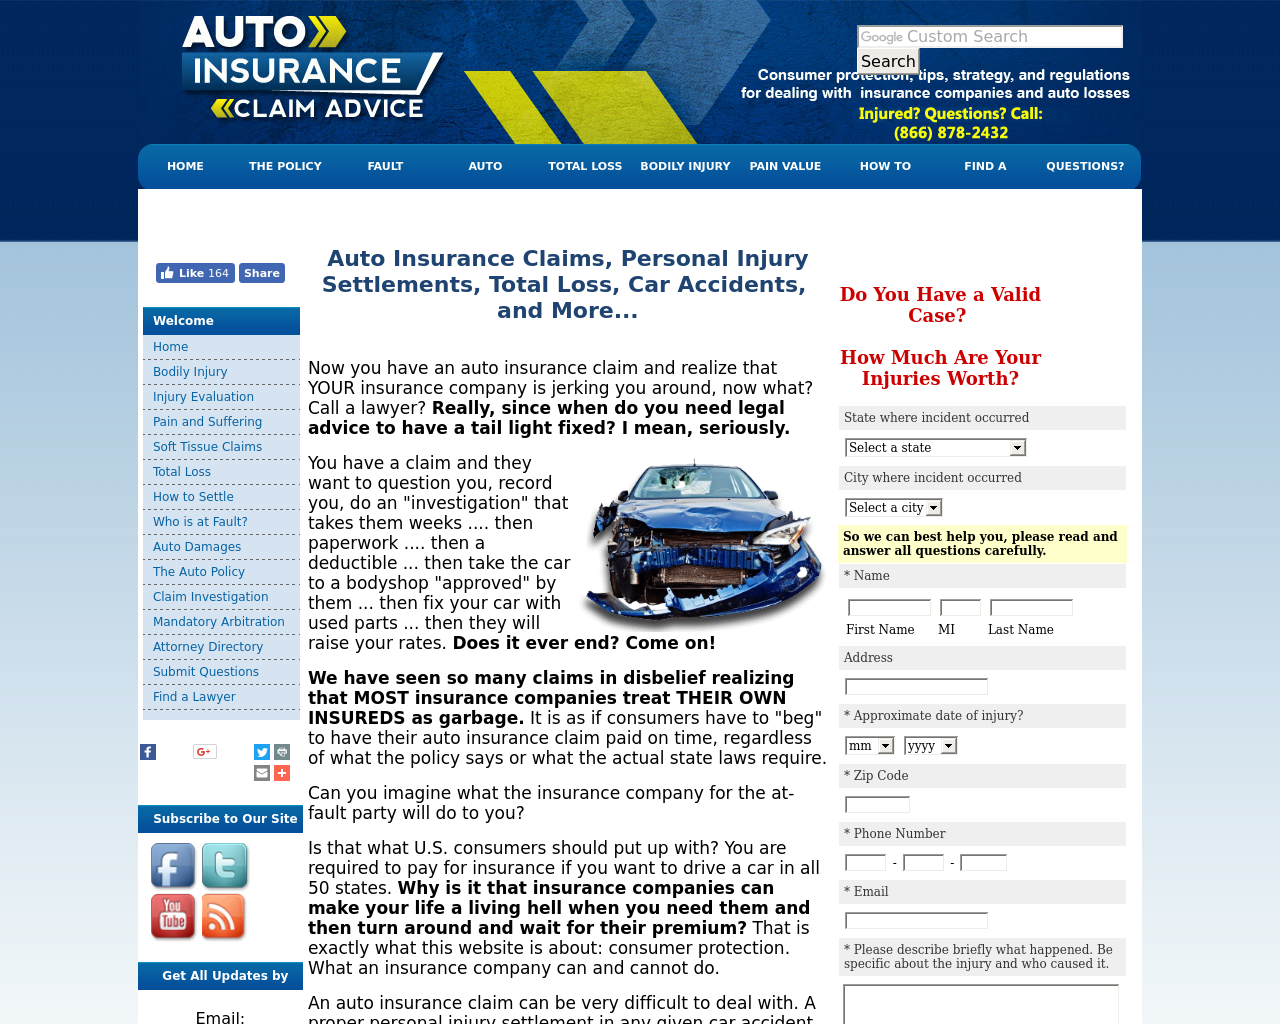 Auto-Insurance-Claims-Advice-Advertising-Reviews-Pricing